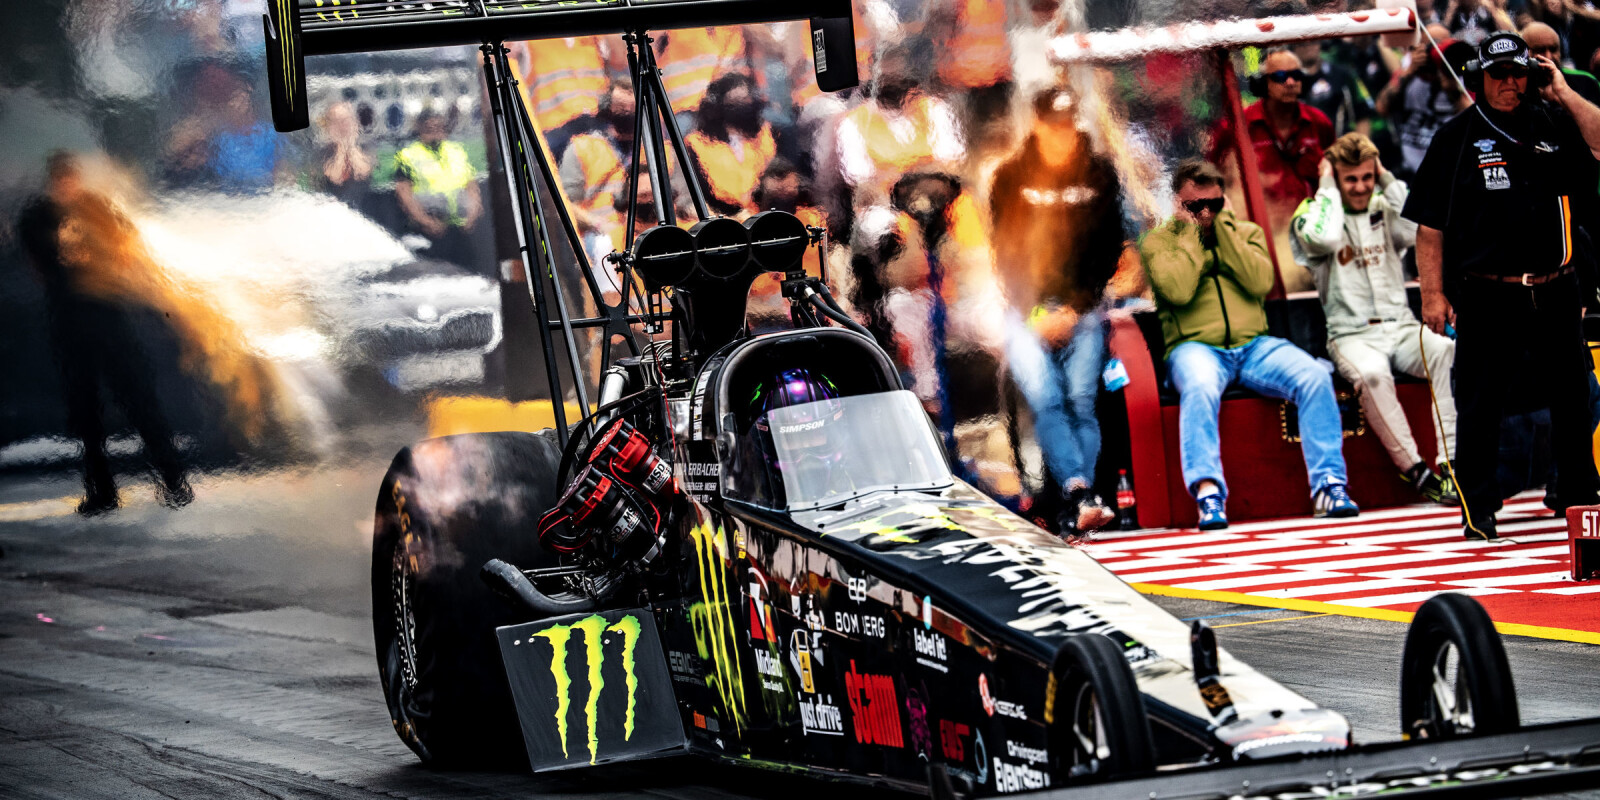 SEVEN REASONS EVERY MOTORSPORT FAN SHOULD CHECK OUT TOP FUEL